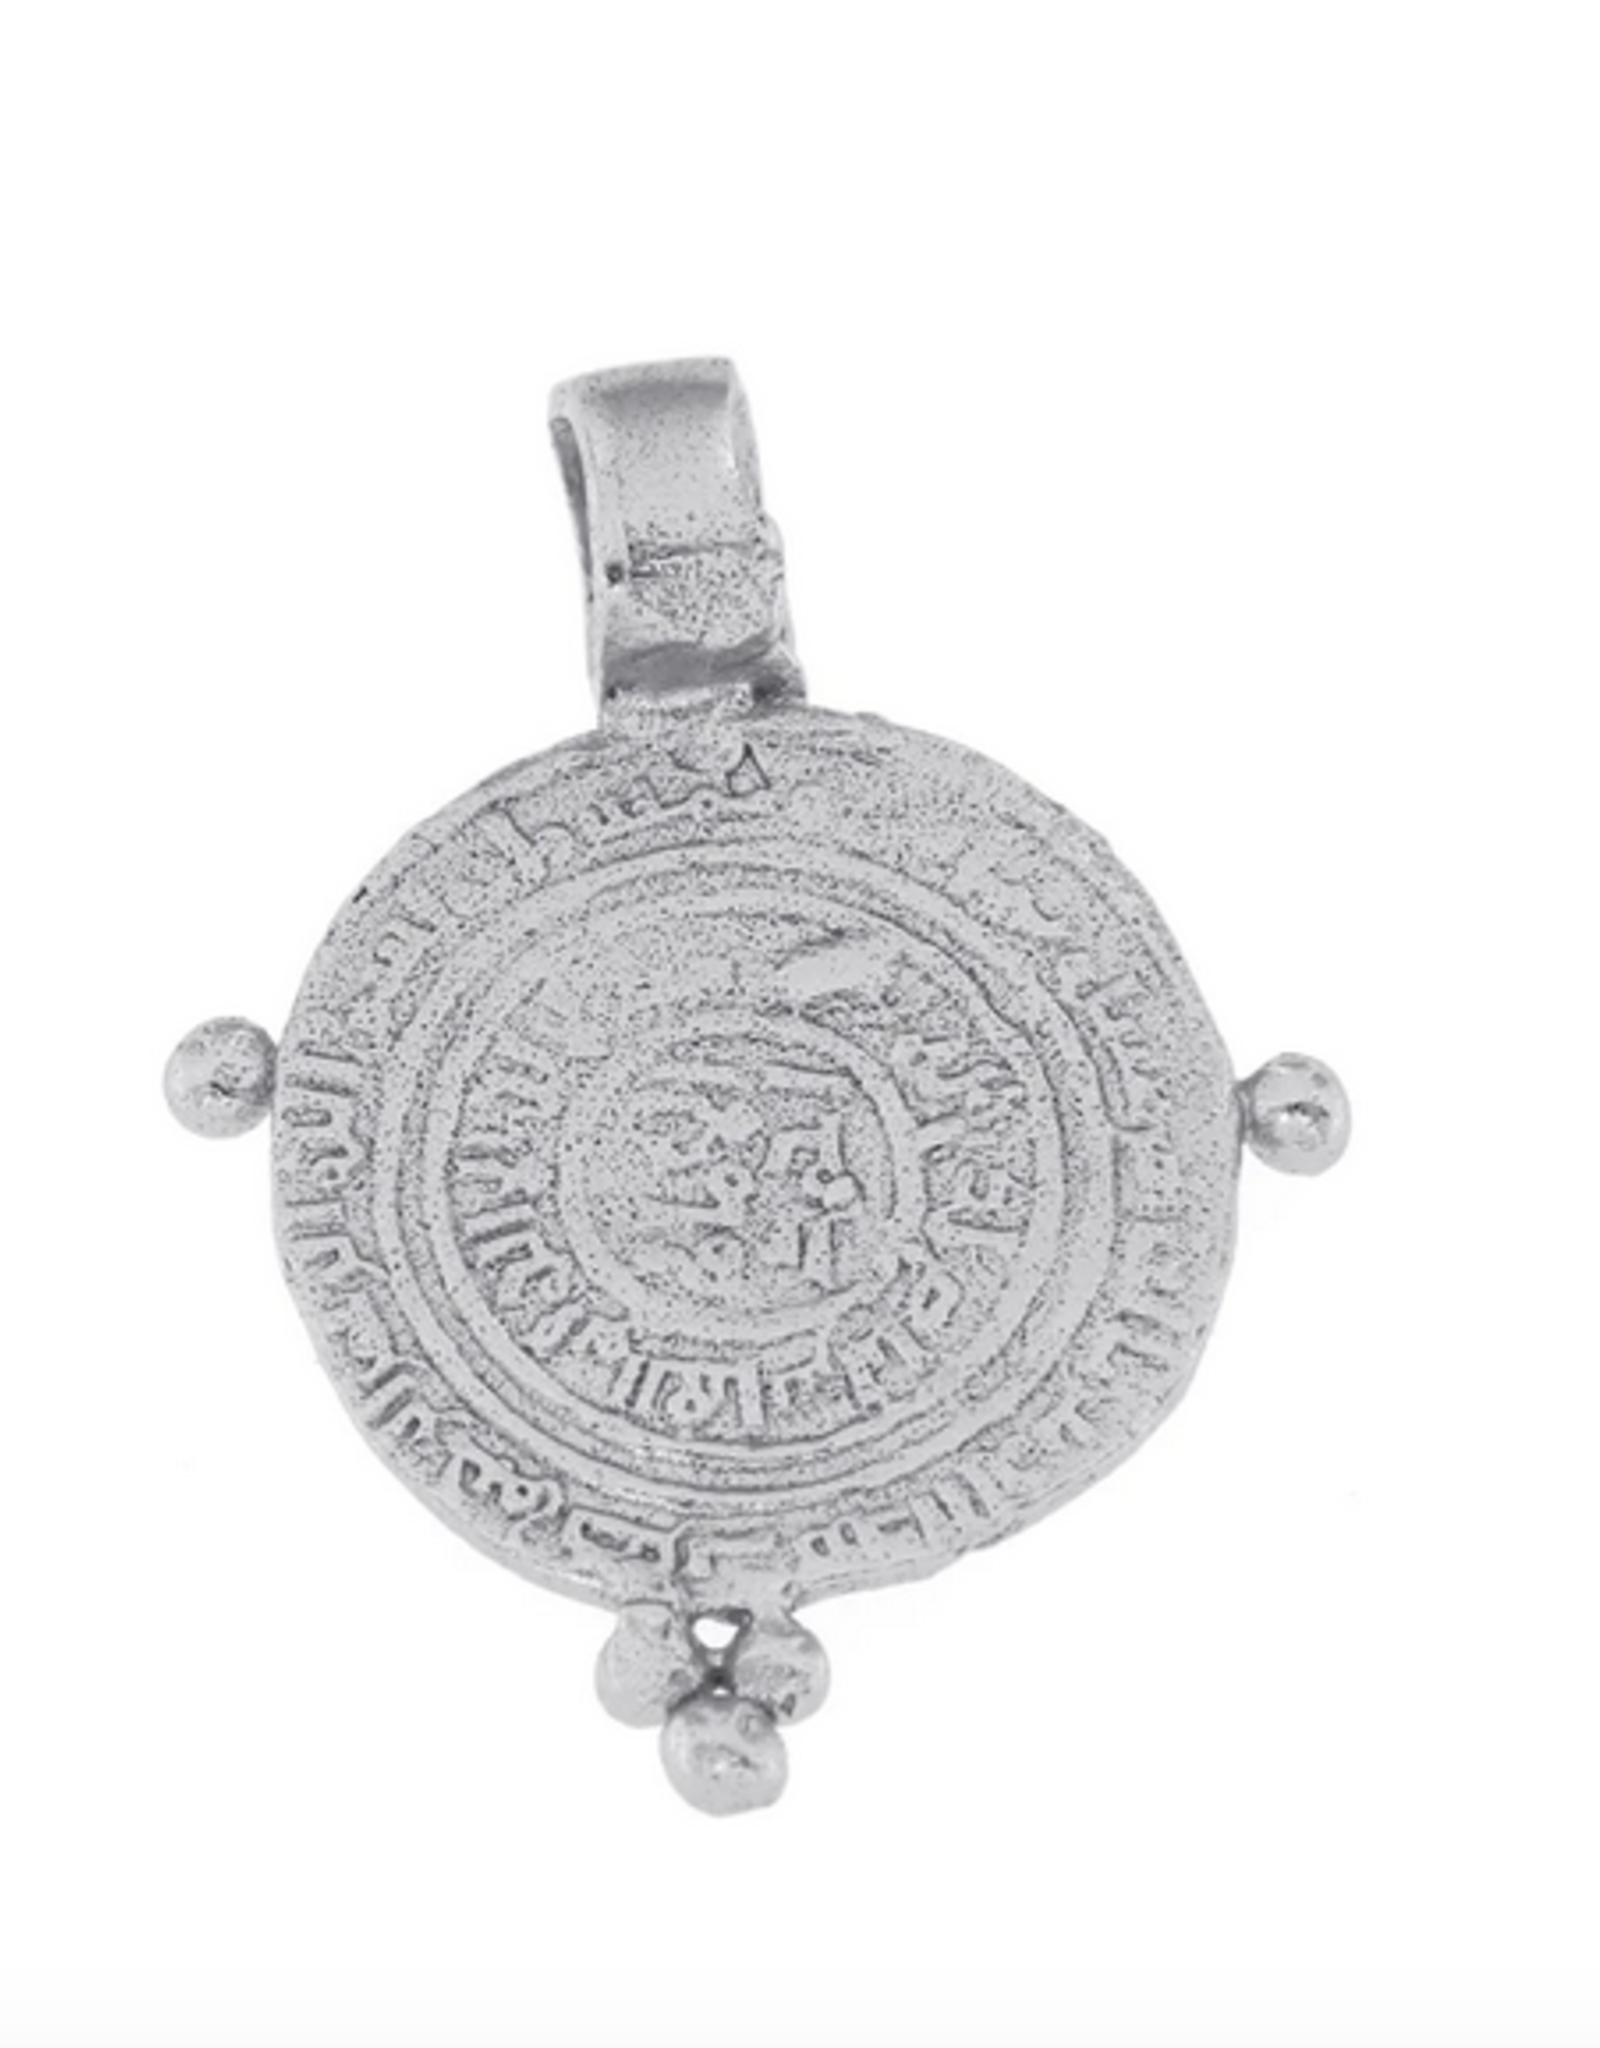 Cleopatra's Bling Gauri Pendant silver necklace